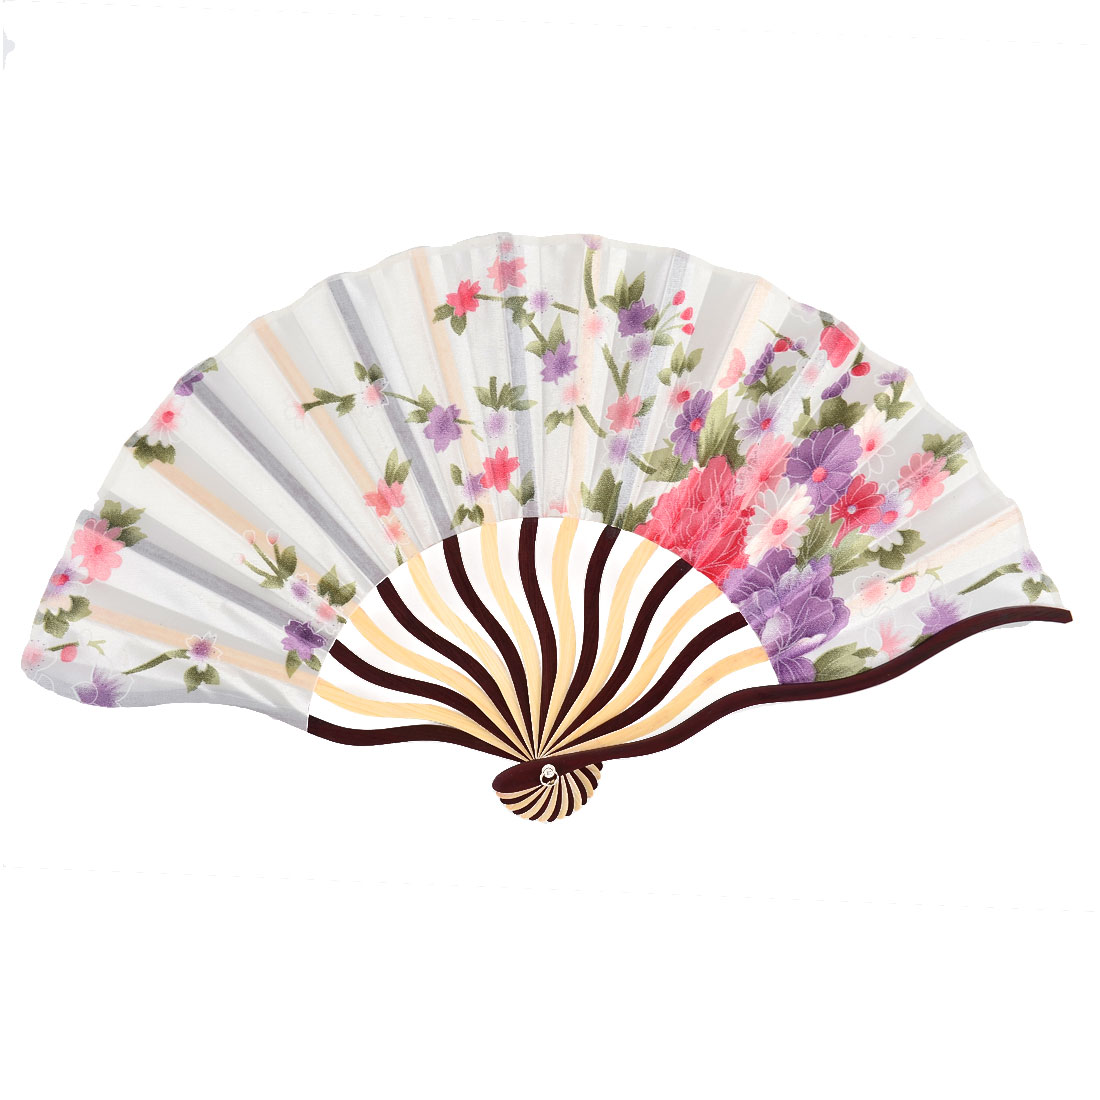 Bamboo Ribs Floral Leaf Printed Summer Cool Foldable Hand Fan Colorful w Bag